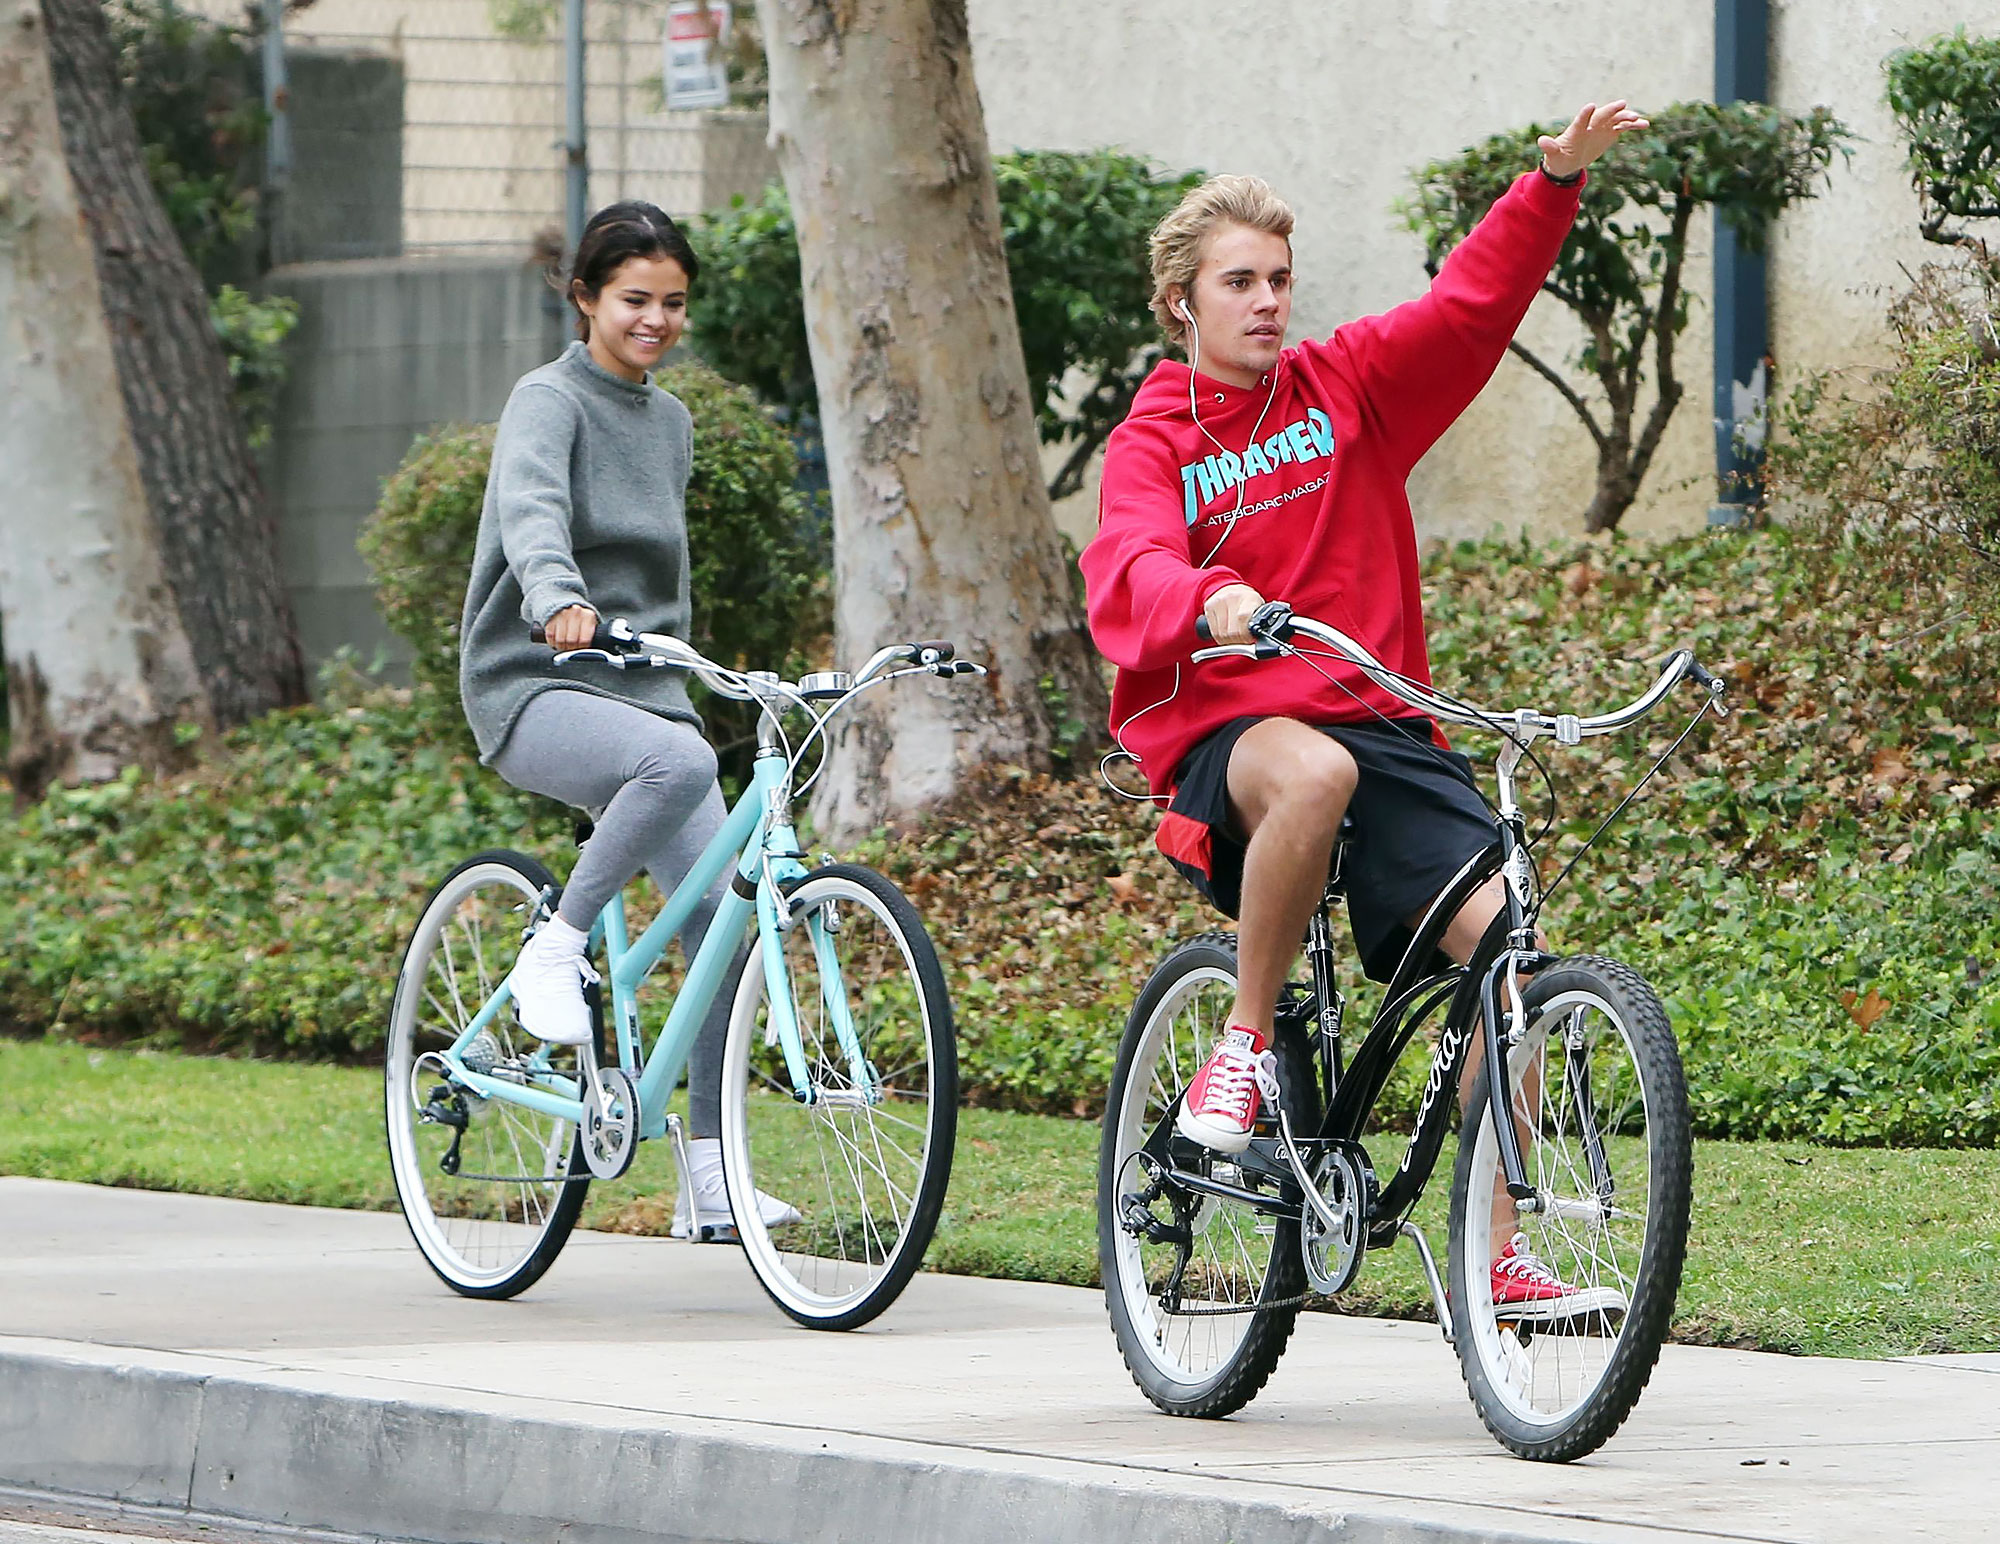 Selena Gomez and Justin Bieber have great fun cruising around on their bikes together in Los Angeles